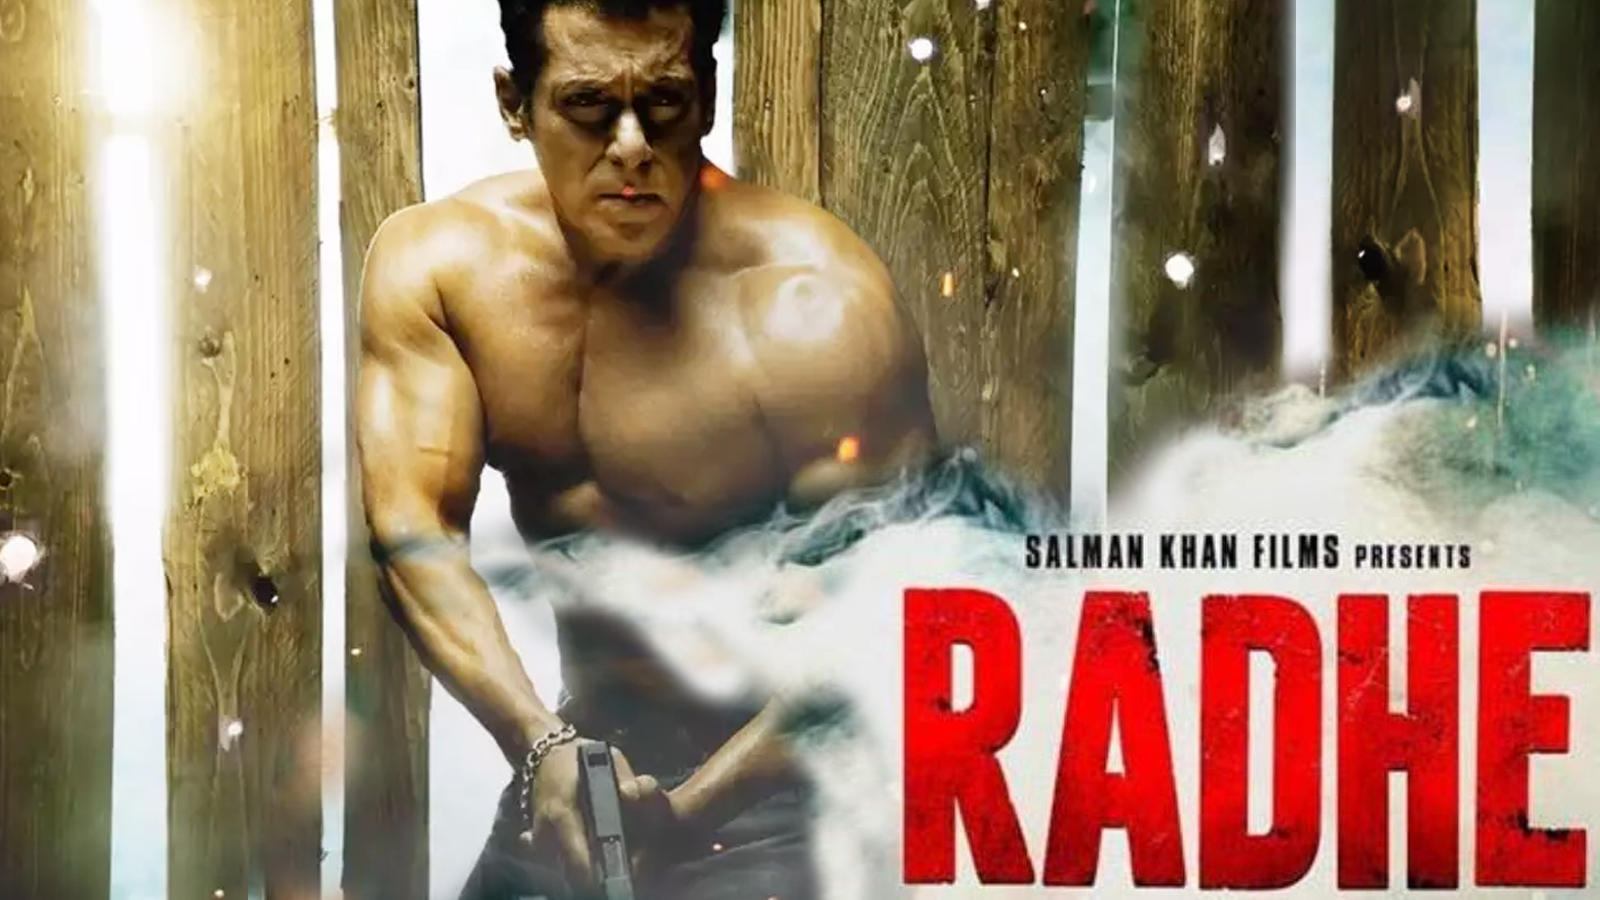 salman-khan-confirms-the-release-of-radhe-in-theatres-on-eid-2021